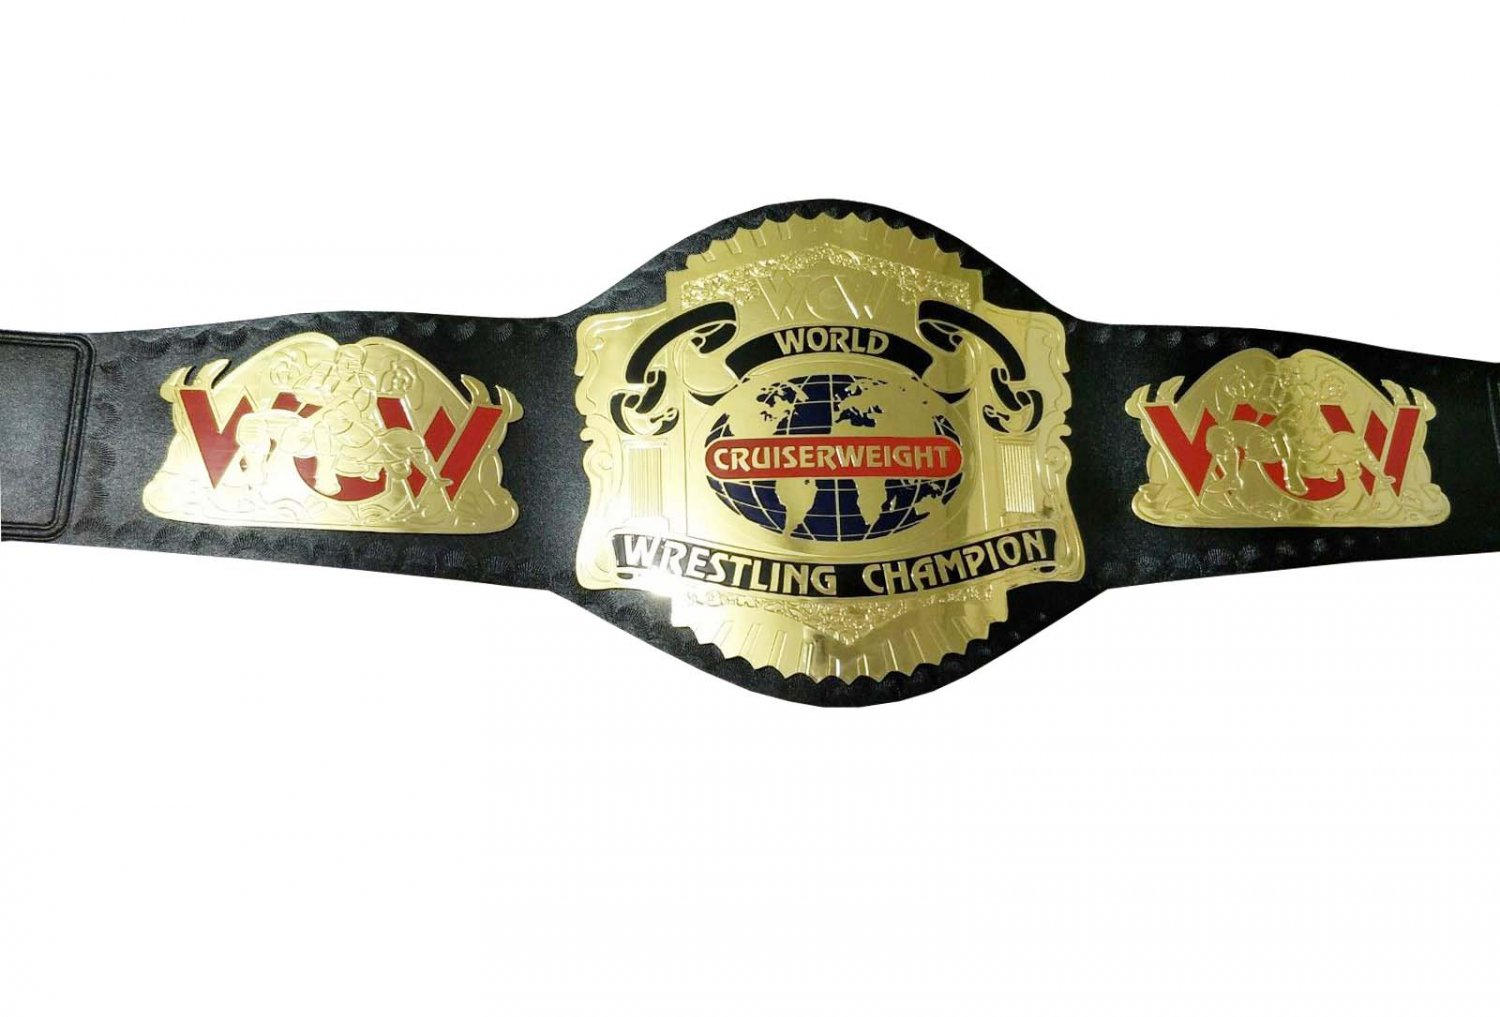 WCW WORLD CRUISERWEIGHT WRESTLING CHAMPIONSHIP BELT BLACK LEATHER STRAP